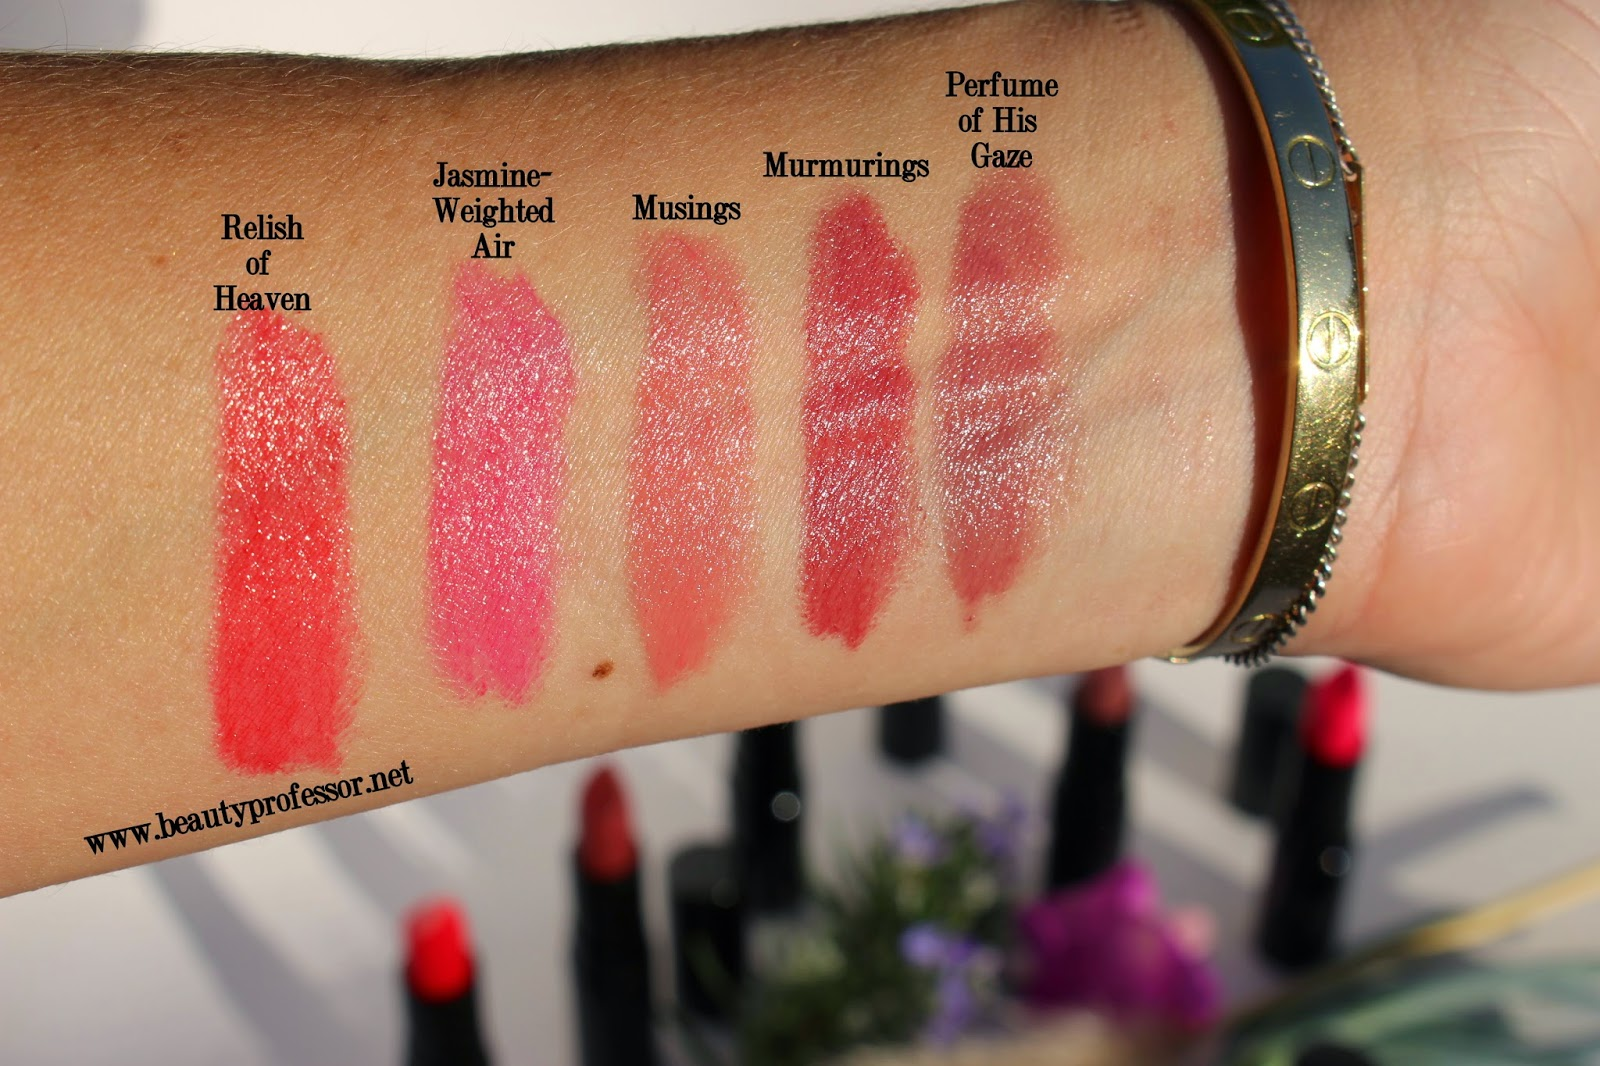 rouge bunny rouge succulence of dew lipstick swatches